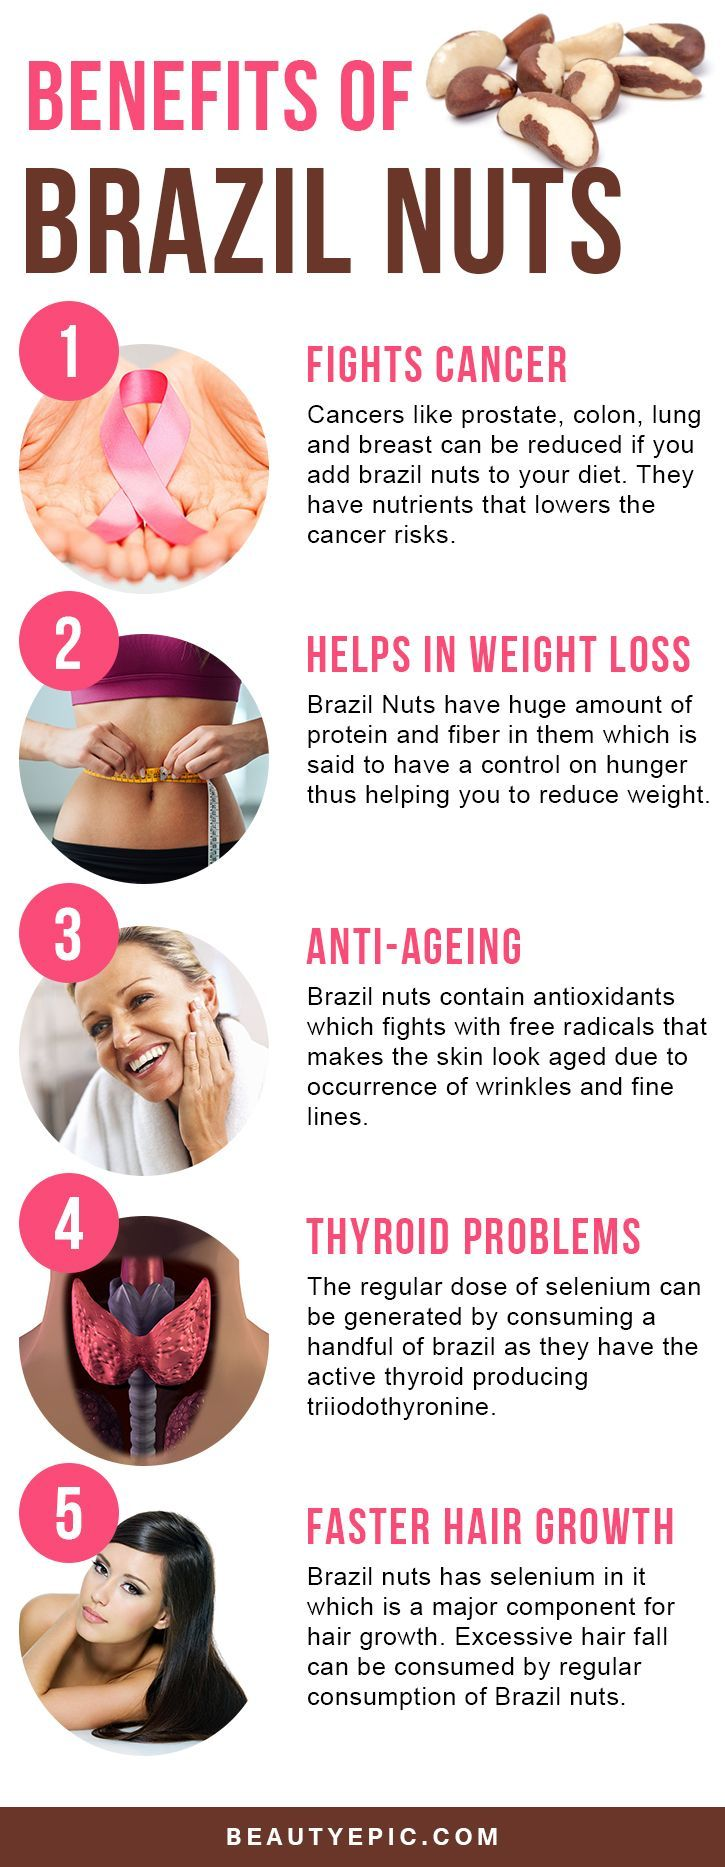 #benefits #amazing #thyroid #brazil #health #nuts #skin #hair #for #and #ofAmazing Benefits of Brazil Nuts for Skin, Hair and Health Benefits of Brazil Nuts for skin, hair & health ThyroidBenefits of Brazil Nuts for skin, hair & health Thyroid #hairhealth